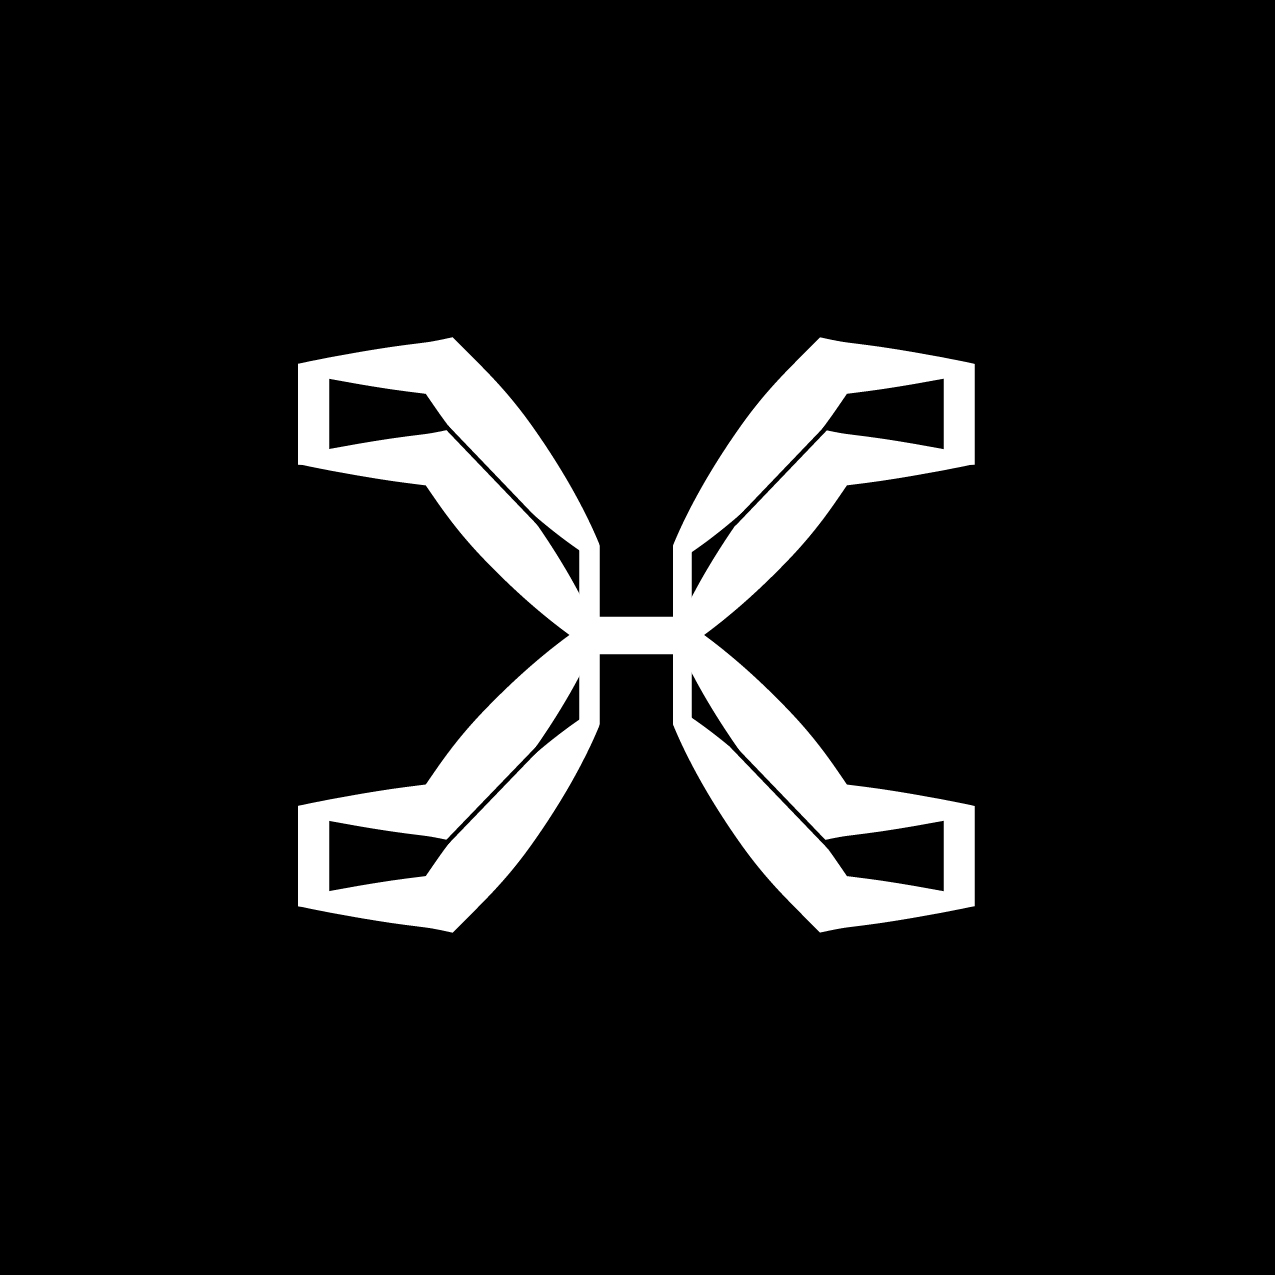 Letter X4 Design by Furia